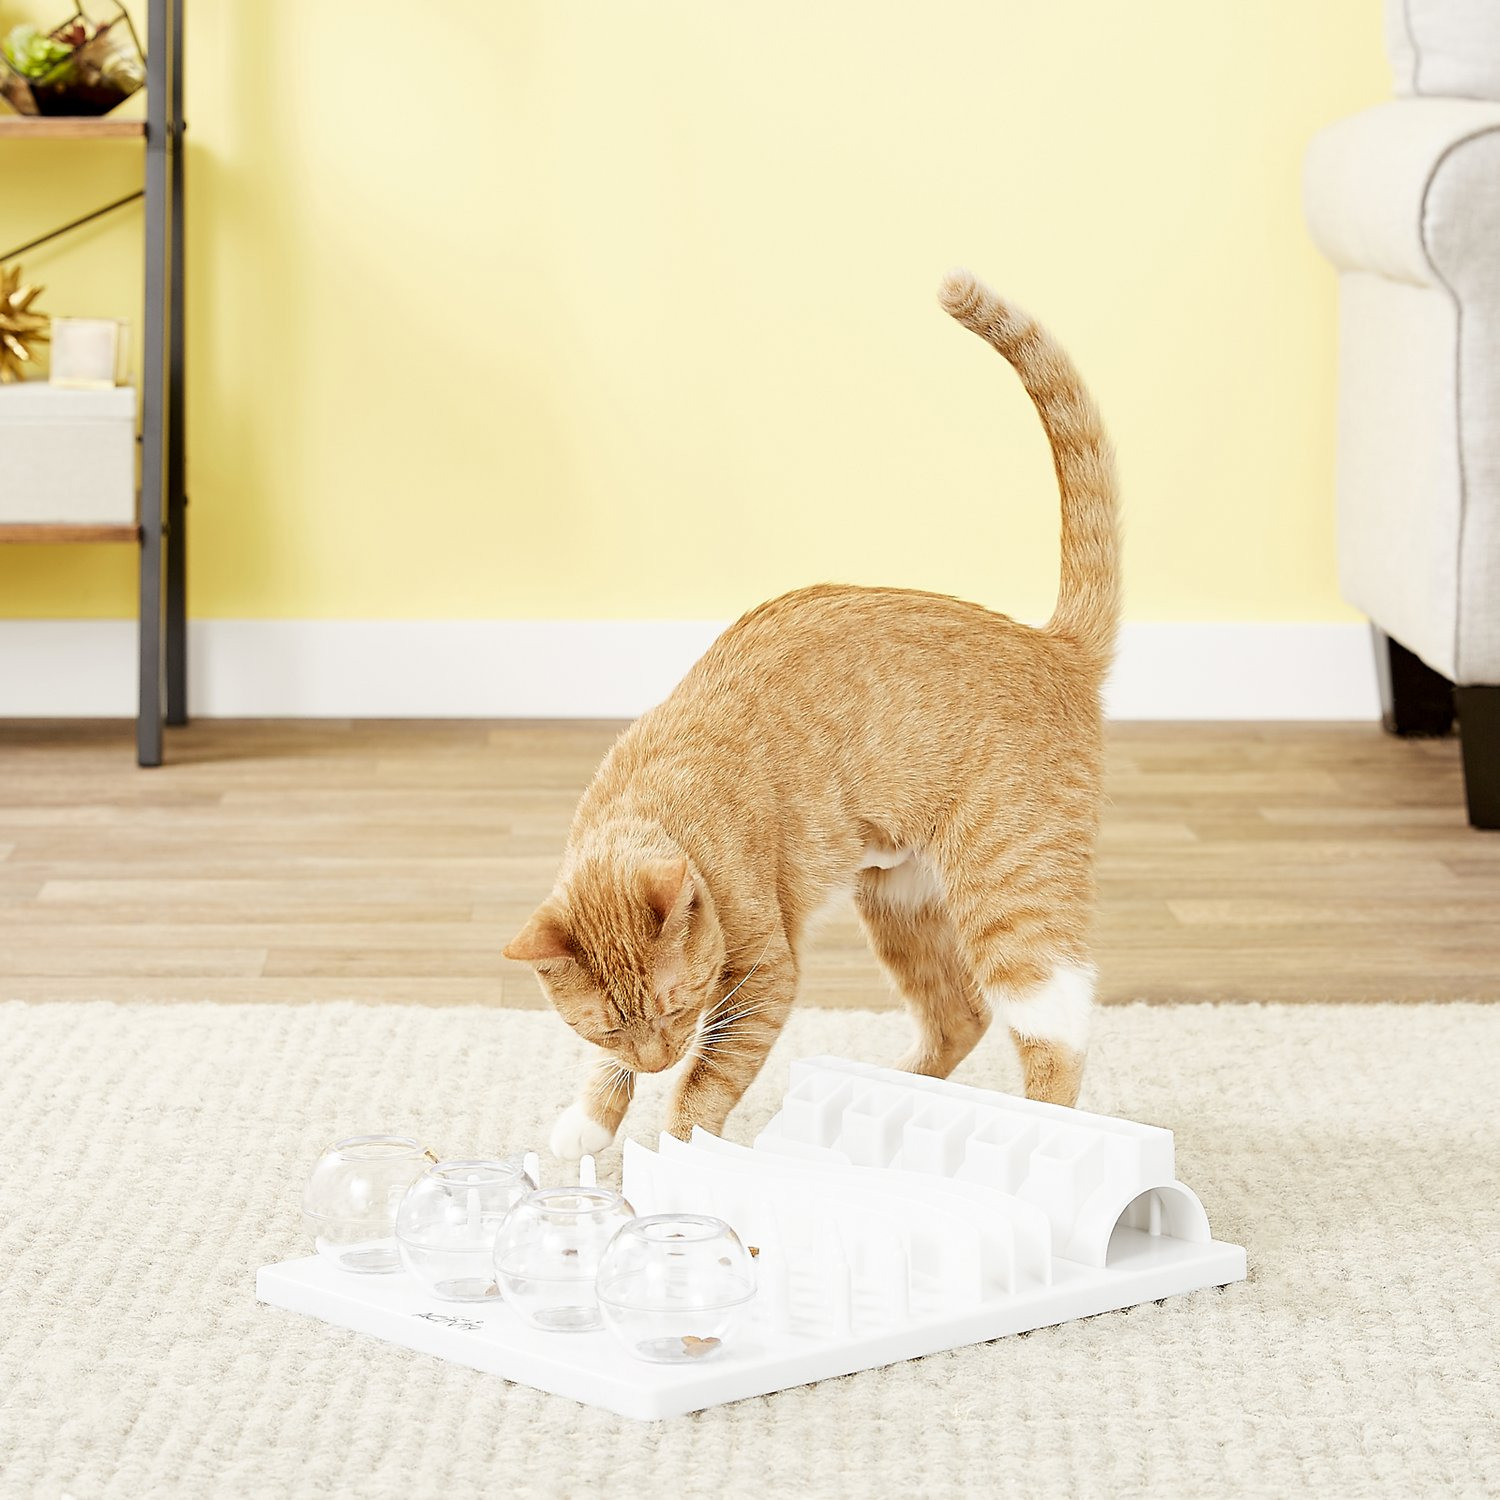 TRIXIE Activity Fun Board 5-in-1 Activity Strategy Game Cat Toy By TRIXIE